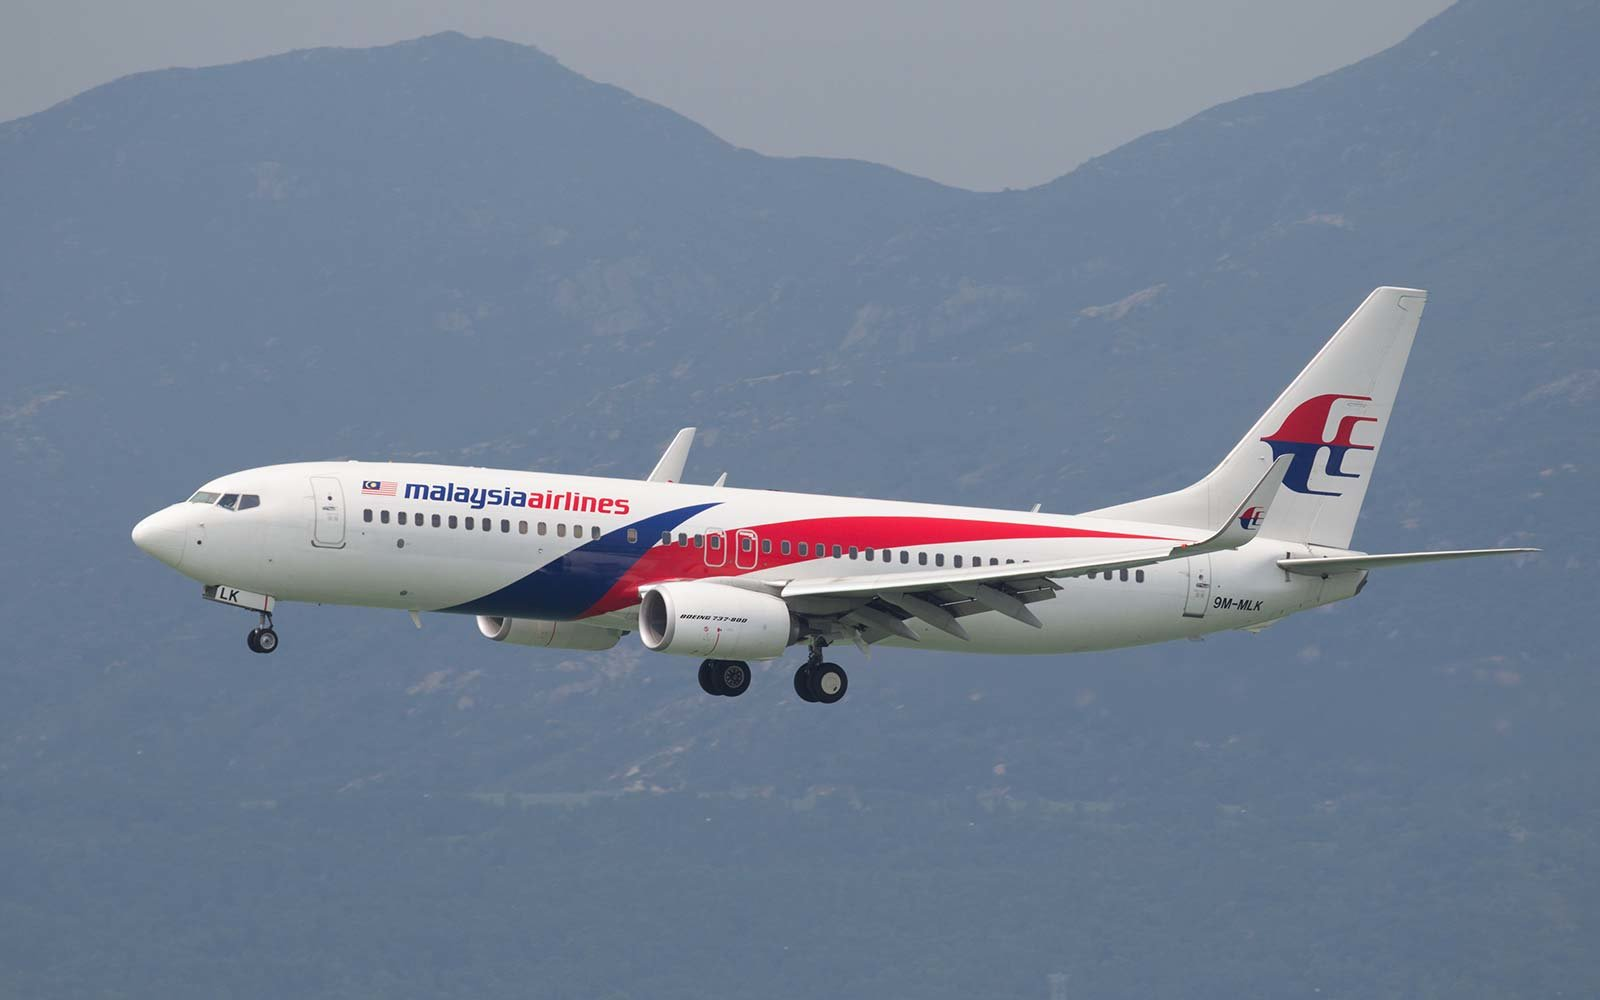 Malaysia Airlines Boeing 737-800 airplane flight